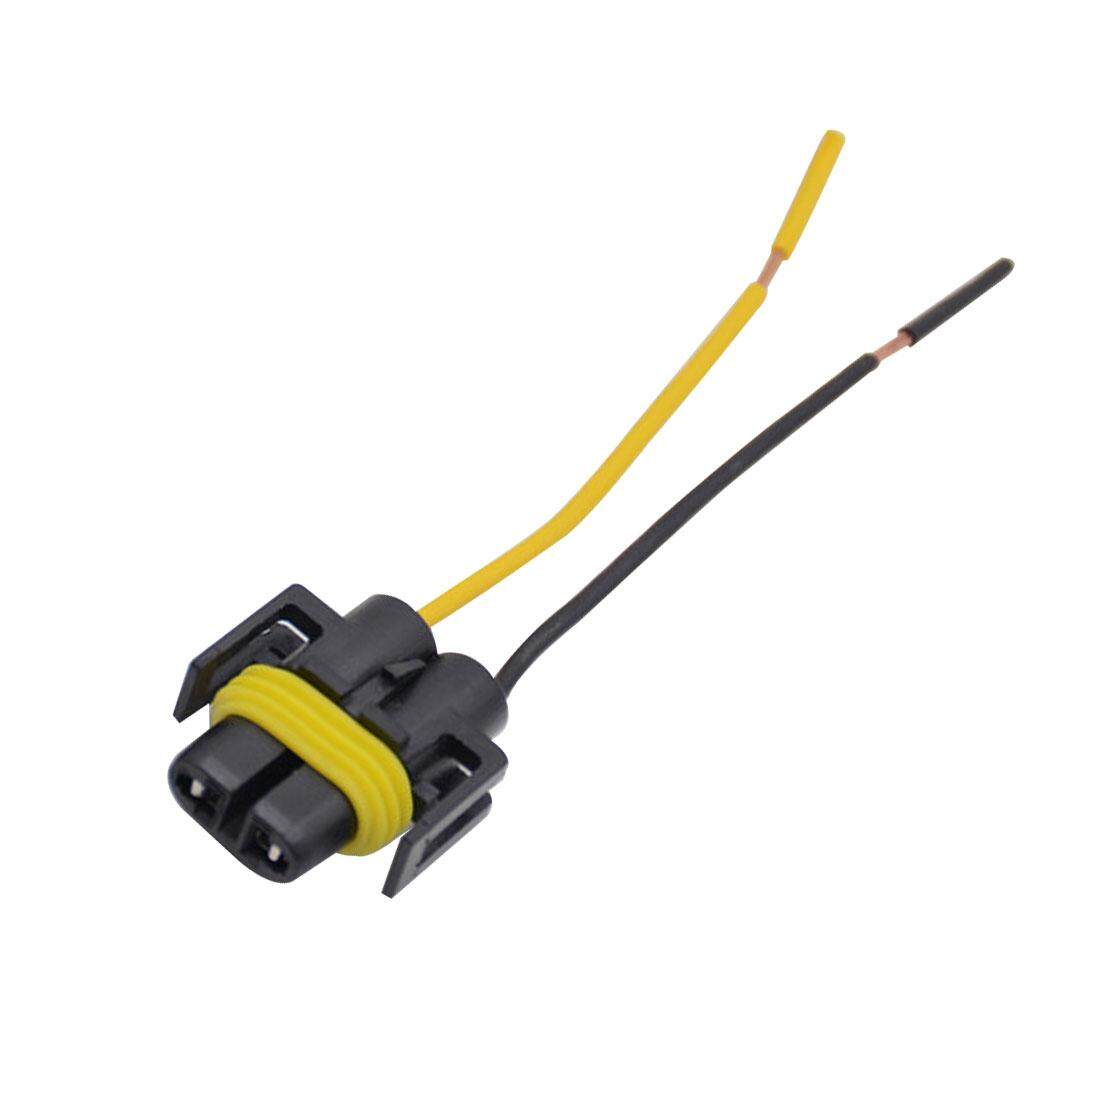 Fitur 2pcs H8 H11 Wiring Harness Socket Female Adapter Car Wire Connectors Connector Cable Plug For Hid Xenon